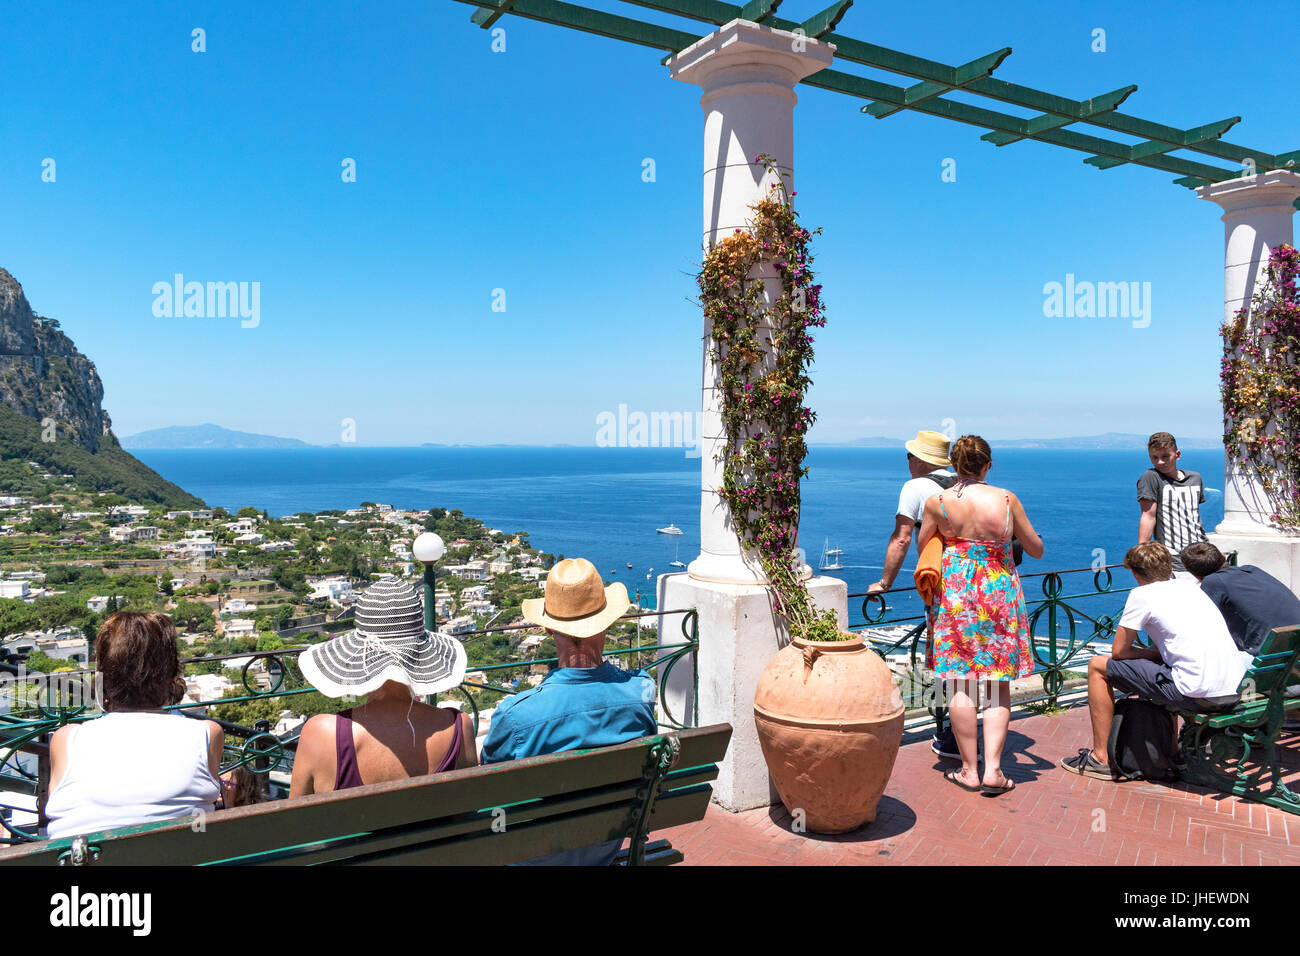 visitors to the island of capri in the gulf of nalpes italy, admire the view from above marina grande. - Stock Image